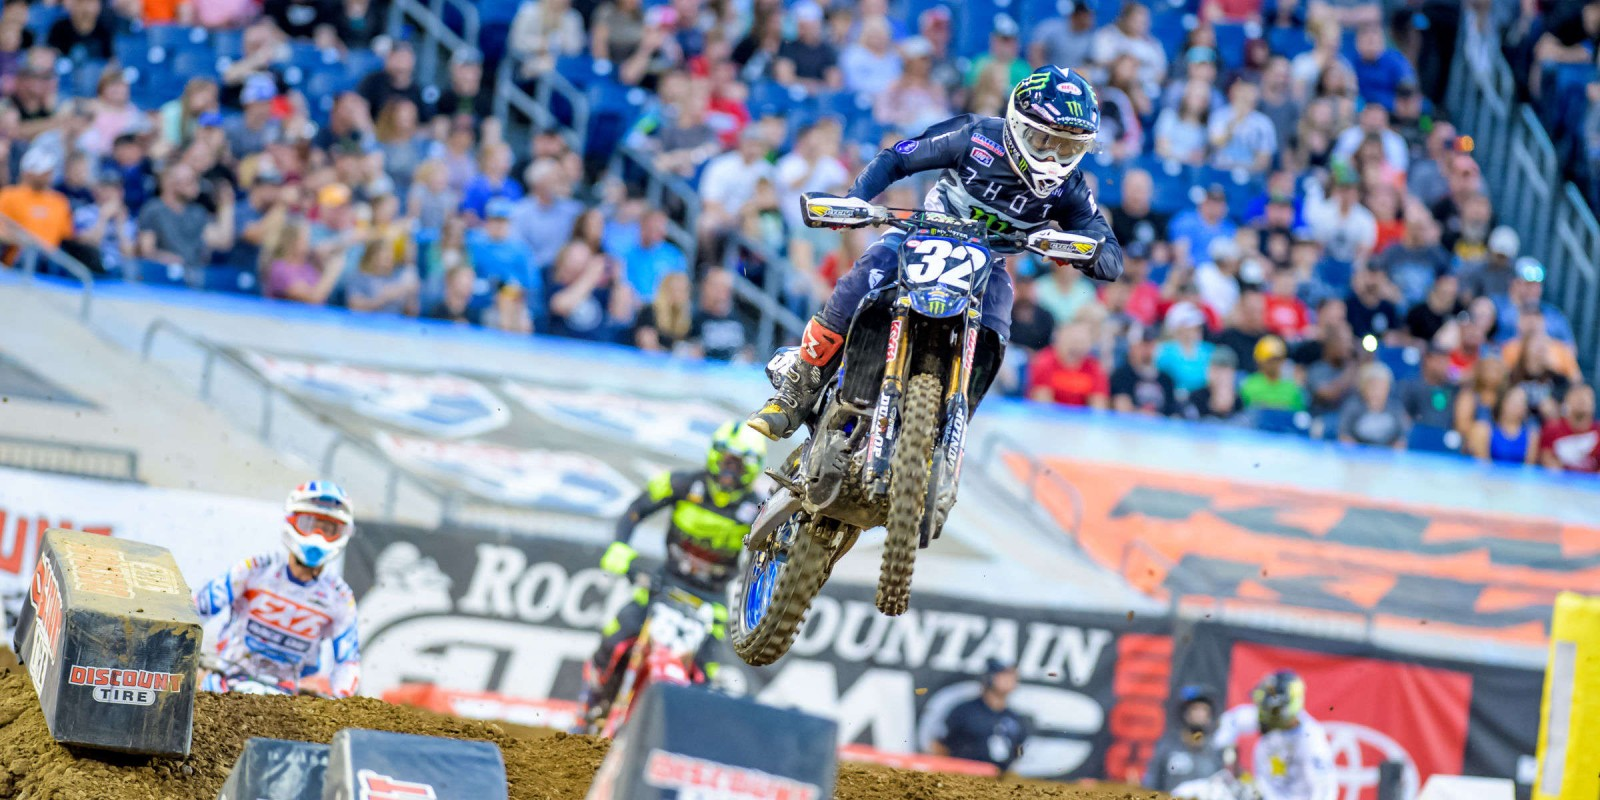 Images from the Monster Energy Supercross event at the Nissan Stadium in Nashville, TN